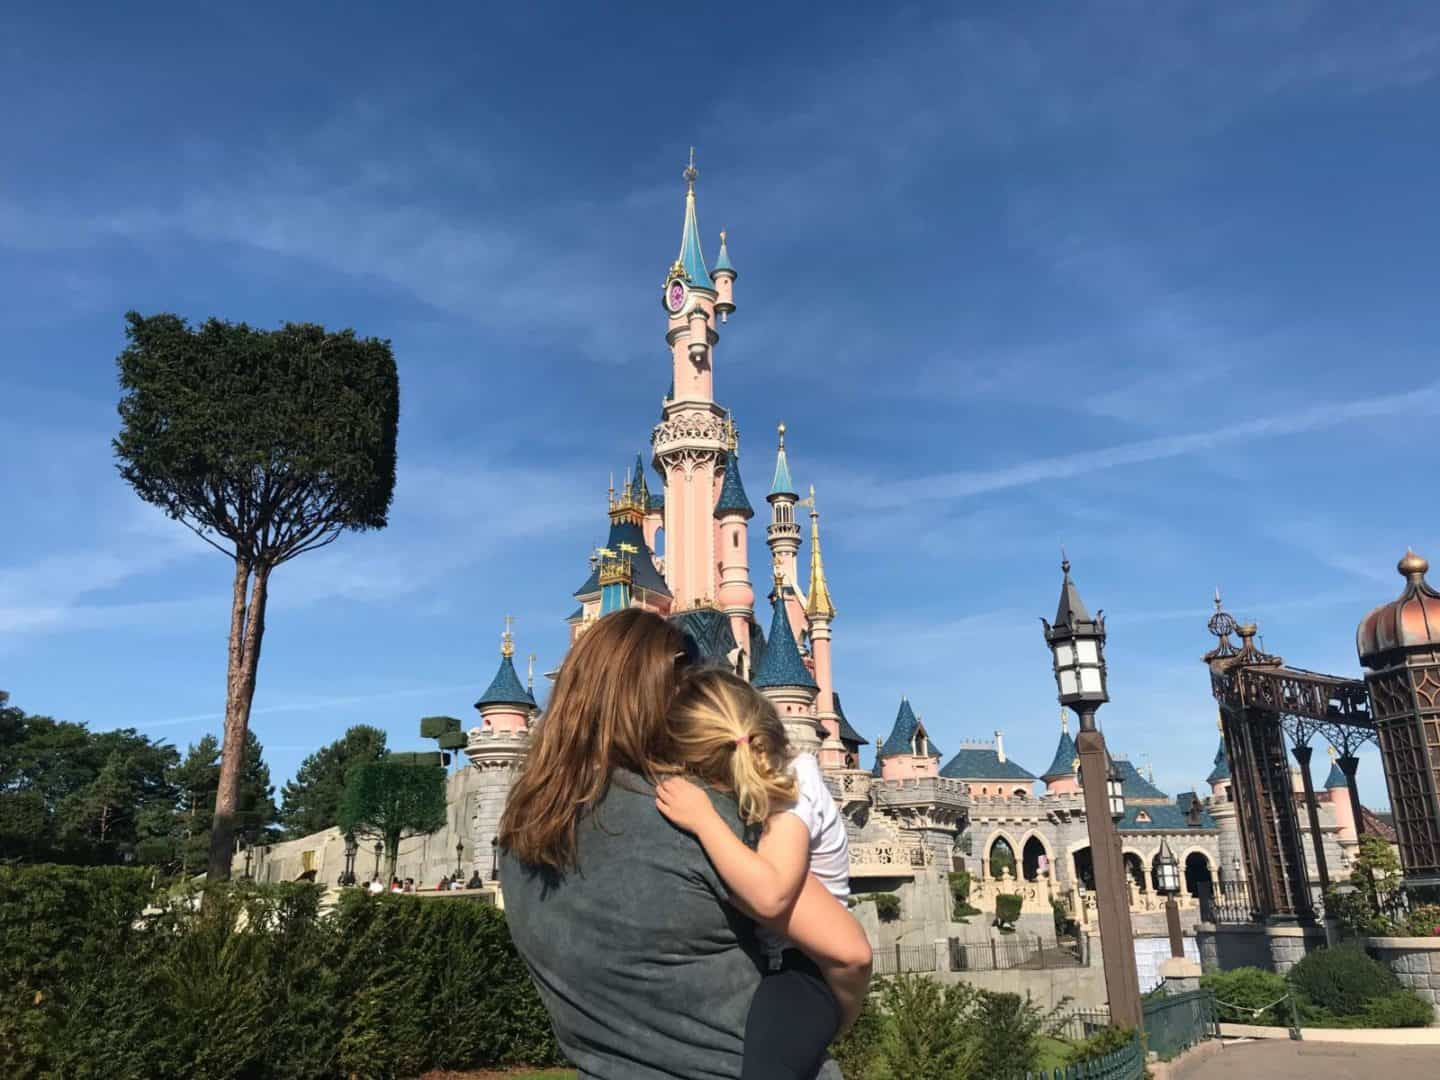 Ultimate Guide to Disneyland Paris for Toddlers (including best Disneyland Paris rides for toddlers)